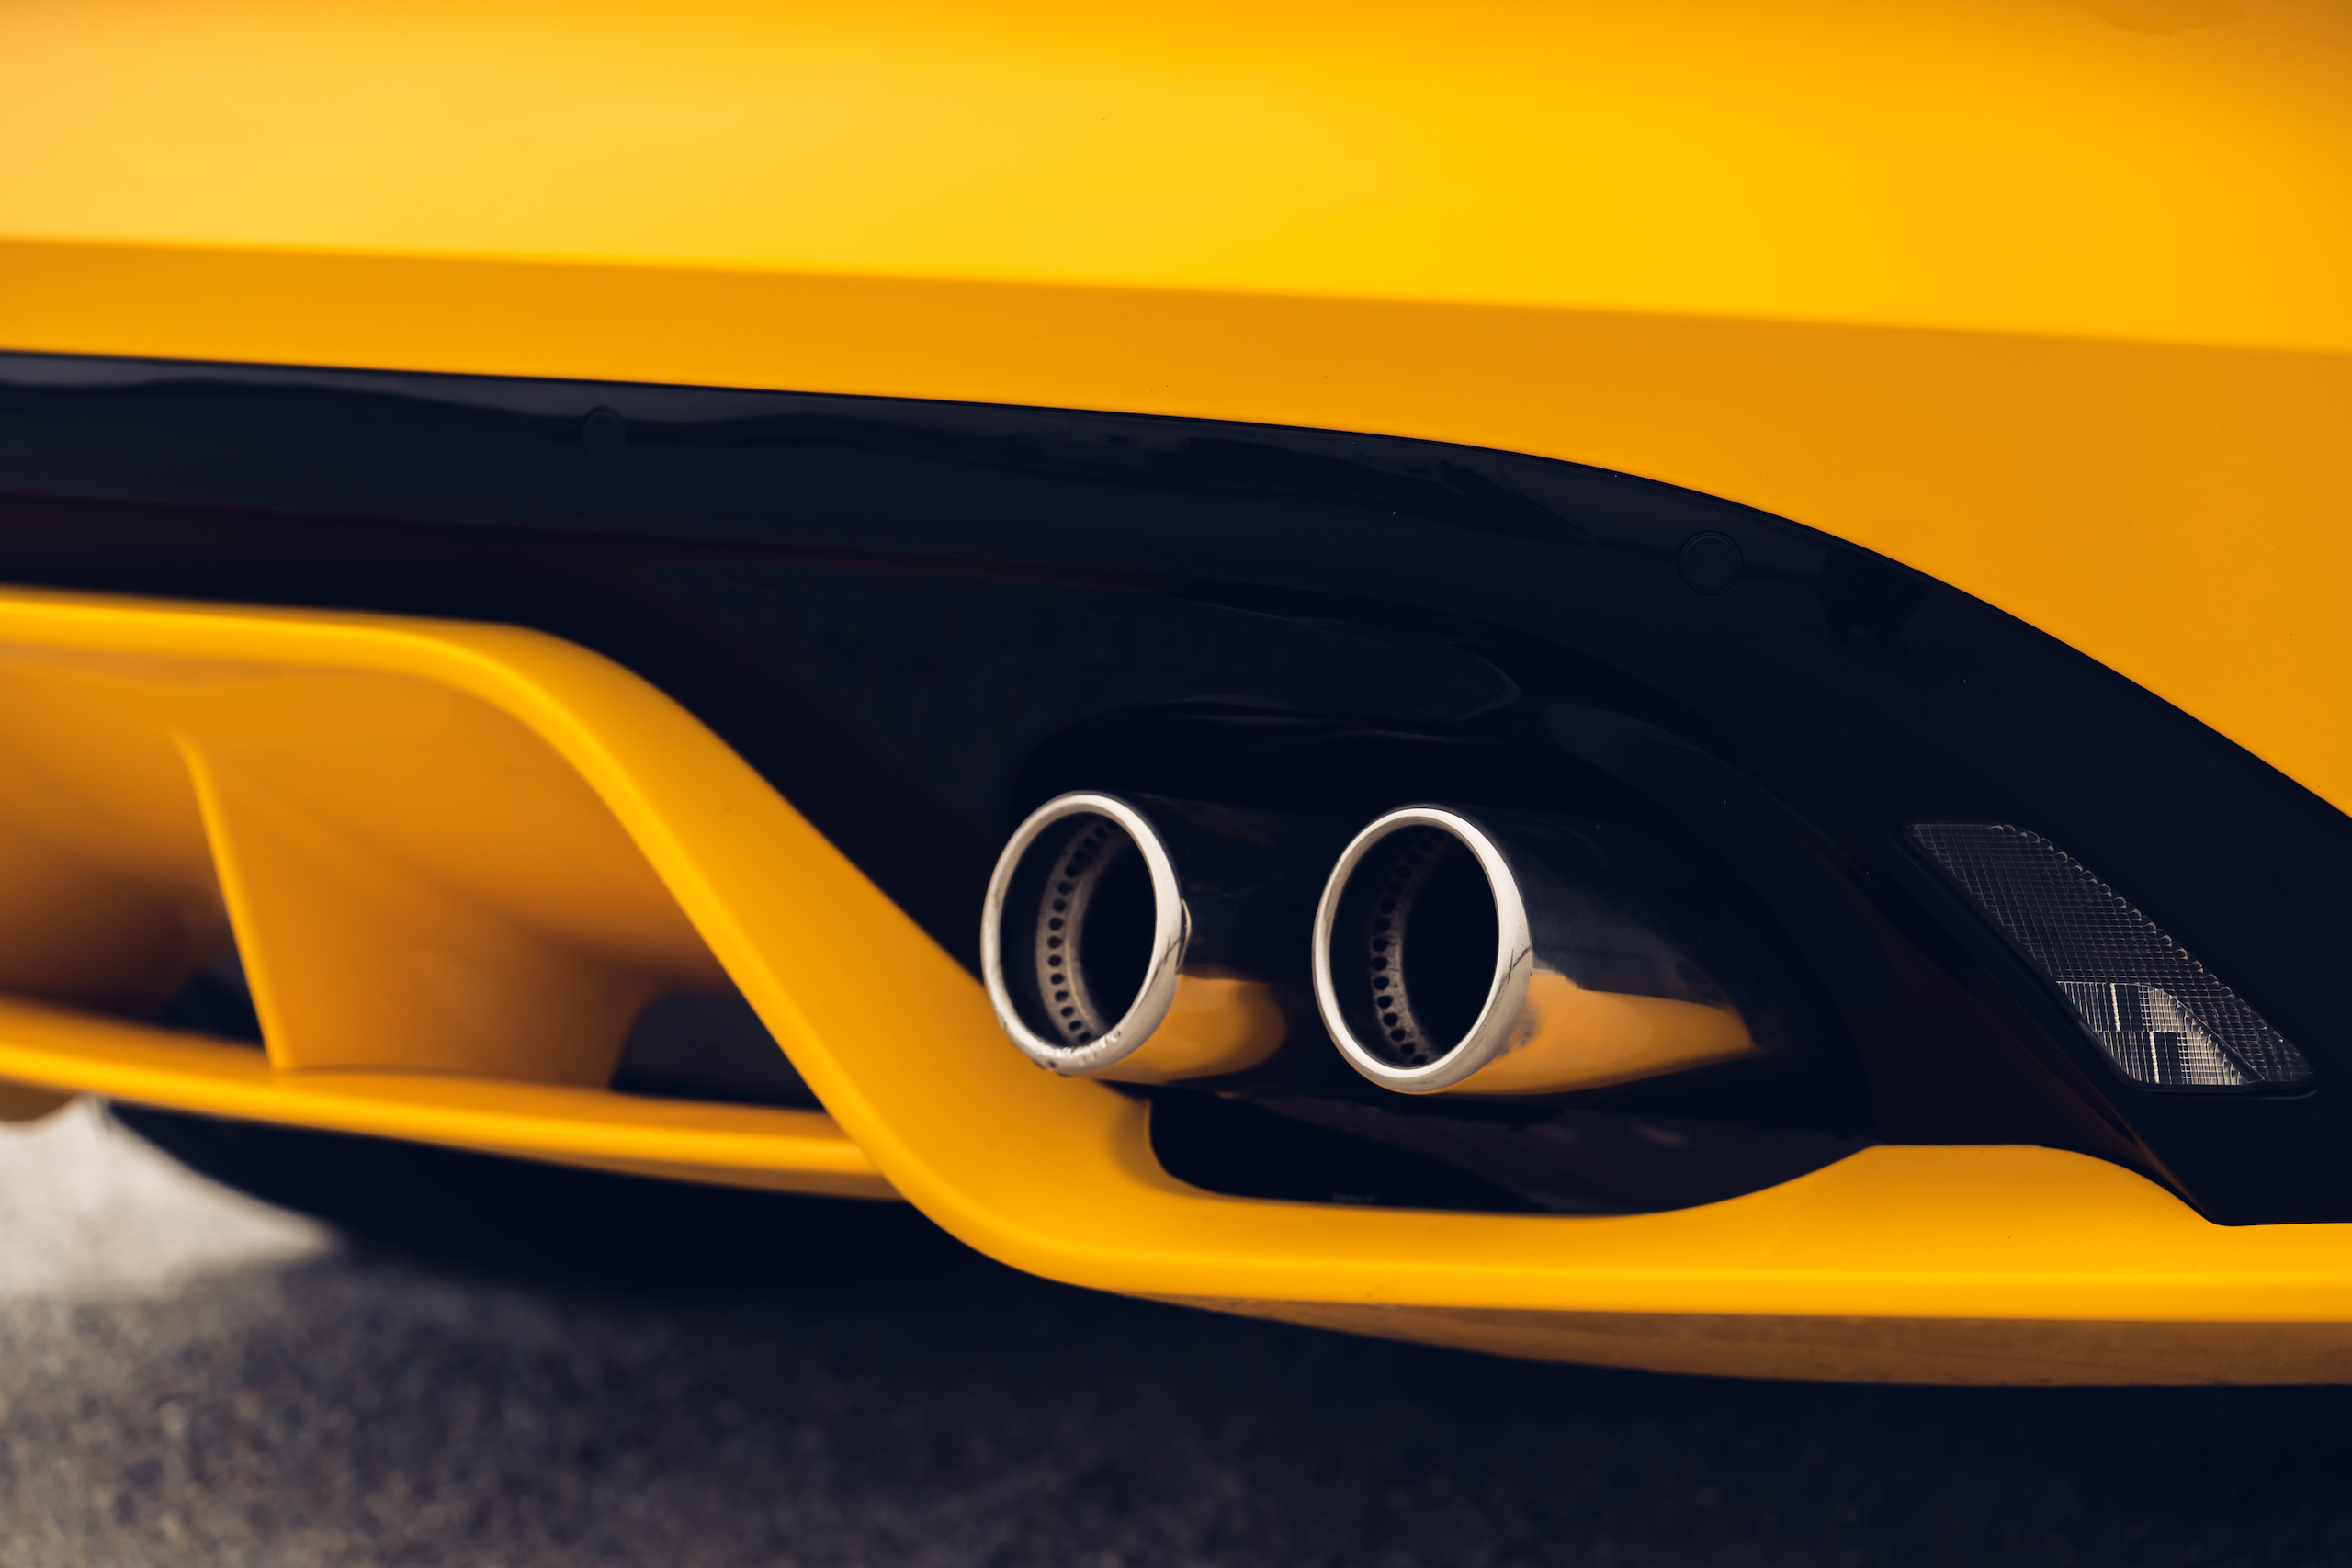 2021 Jaguar F-TYPE_R Coupe tailpipe tips